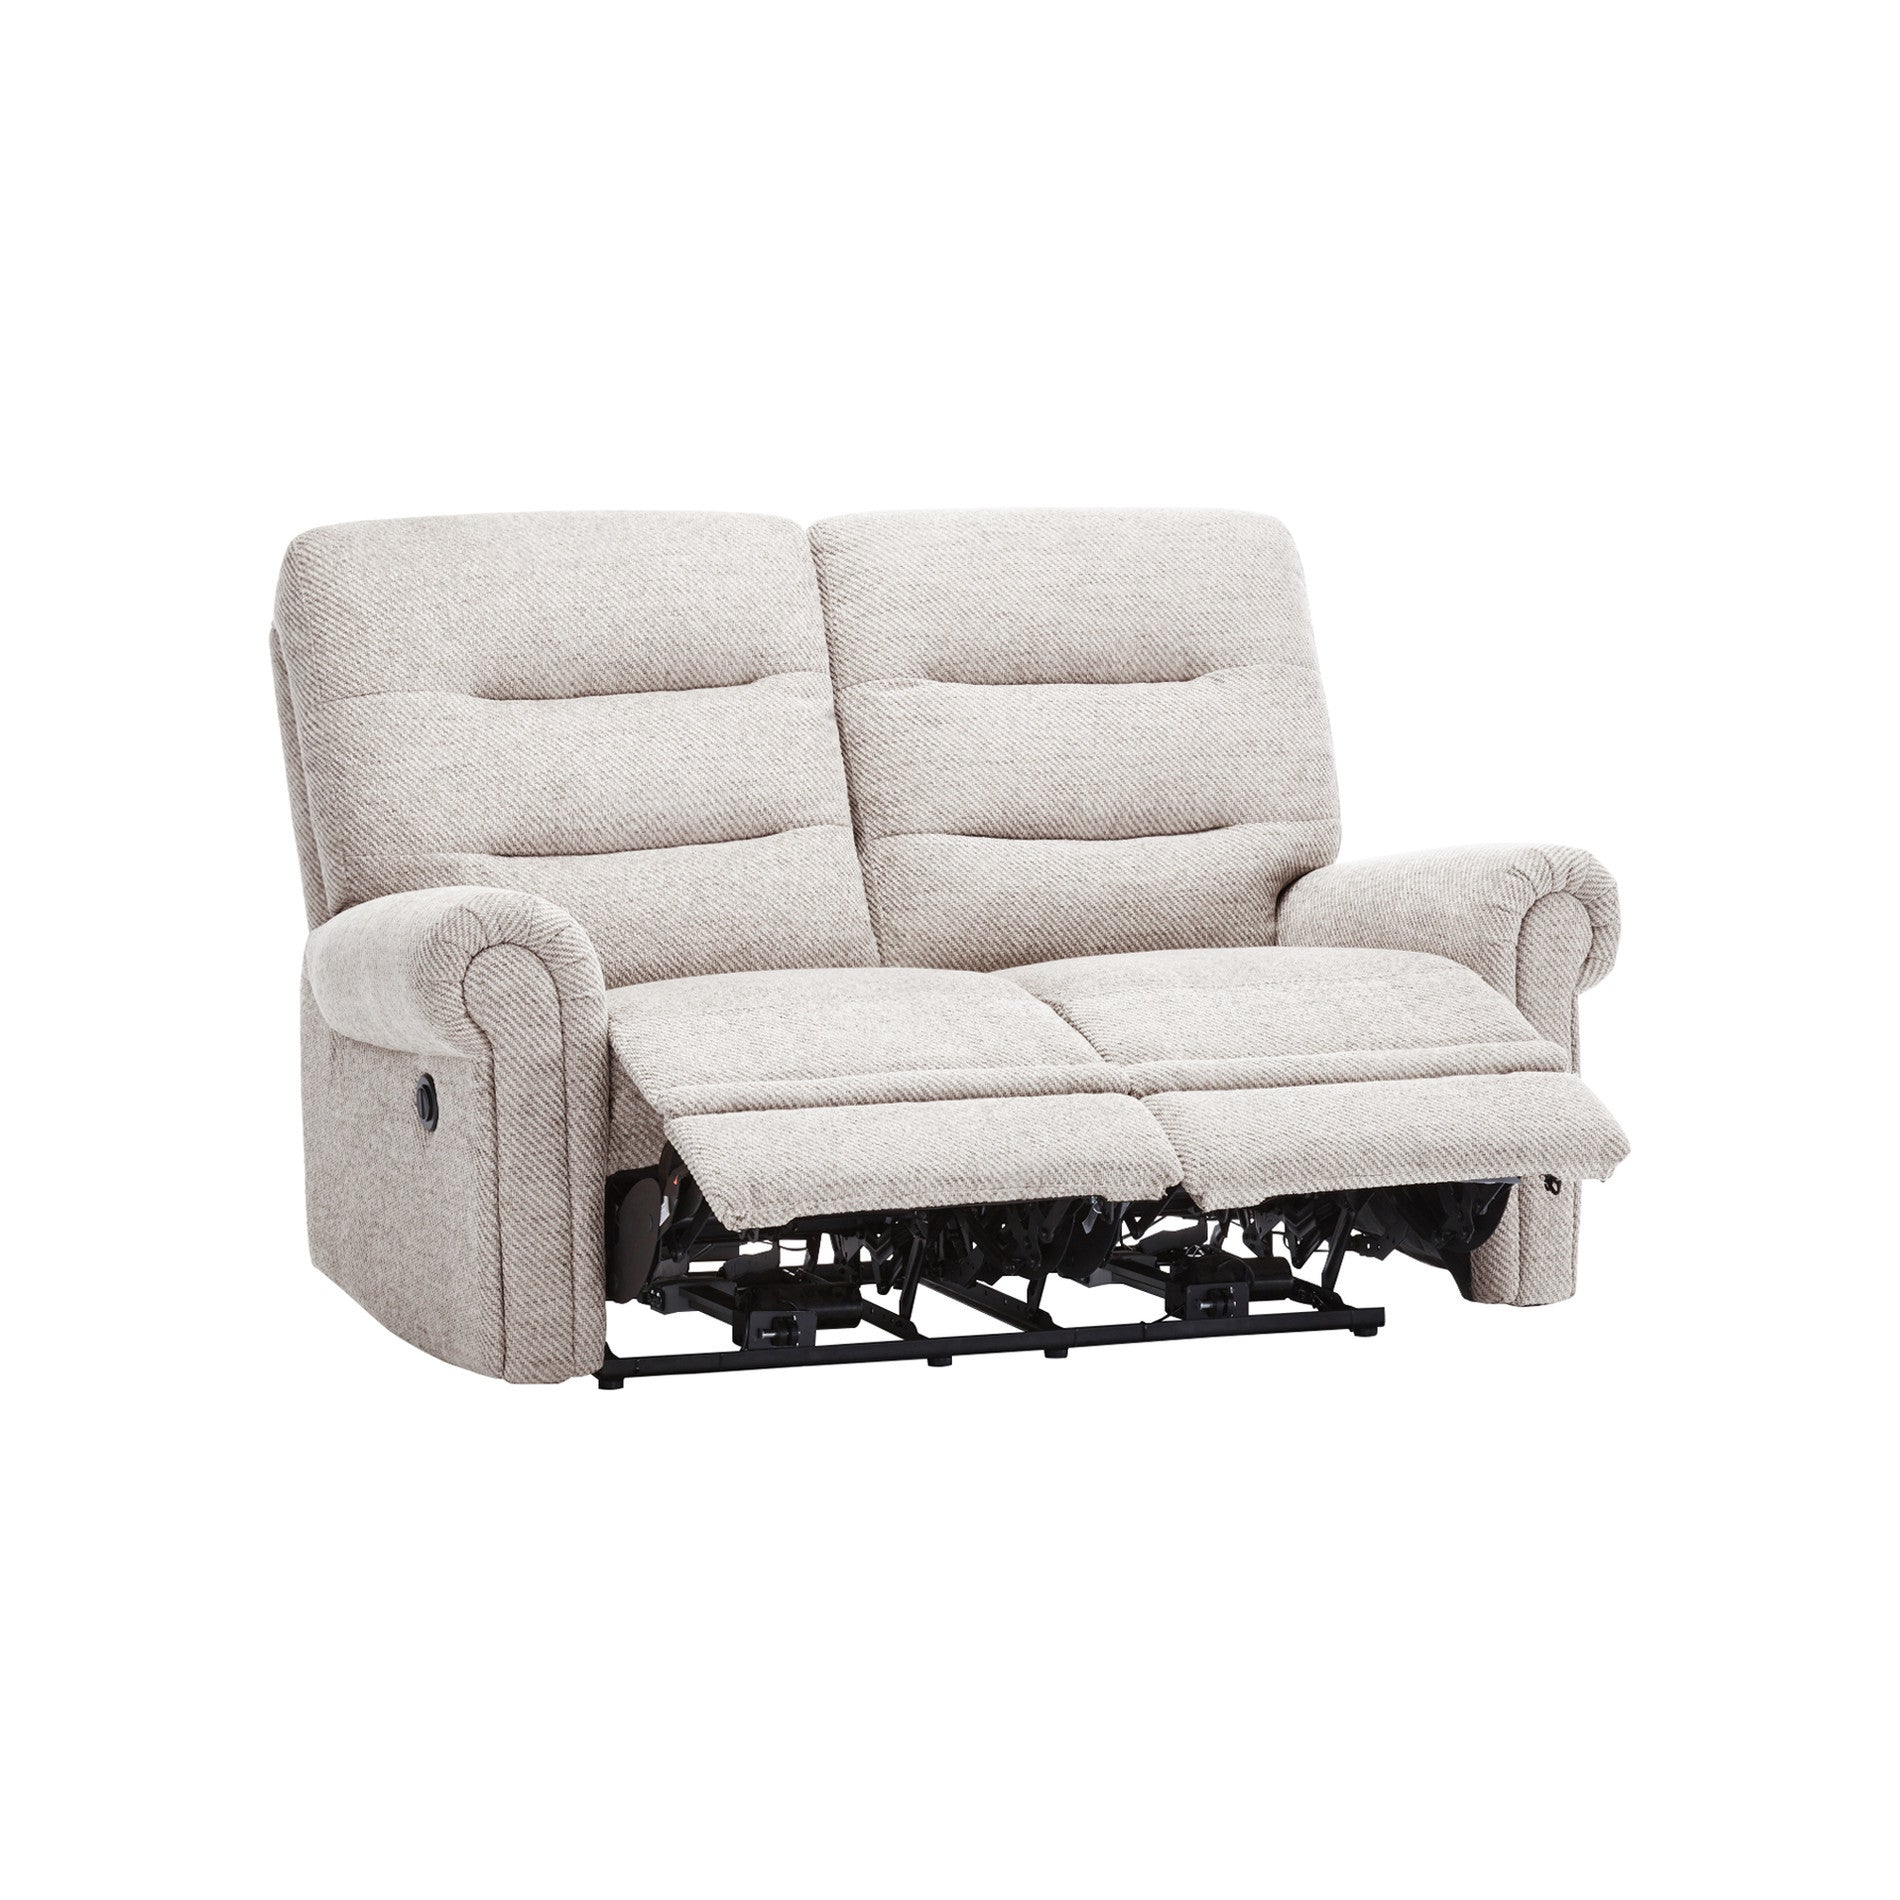 Eastbourne Electric Reclining 2 Seater Sofa Silver Fabric – Sofa